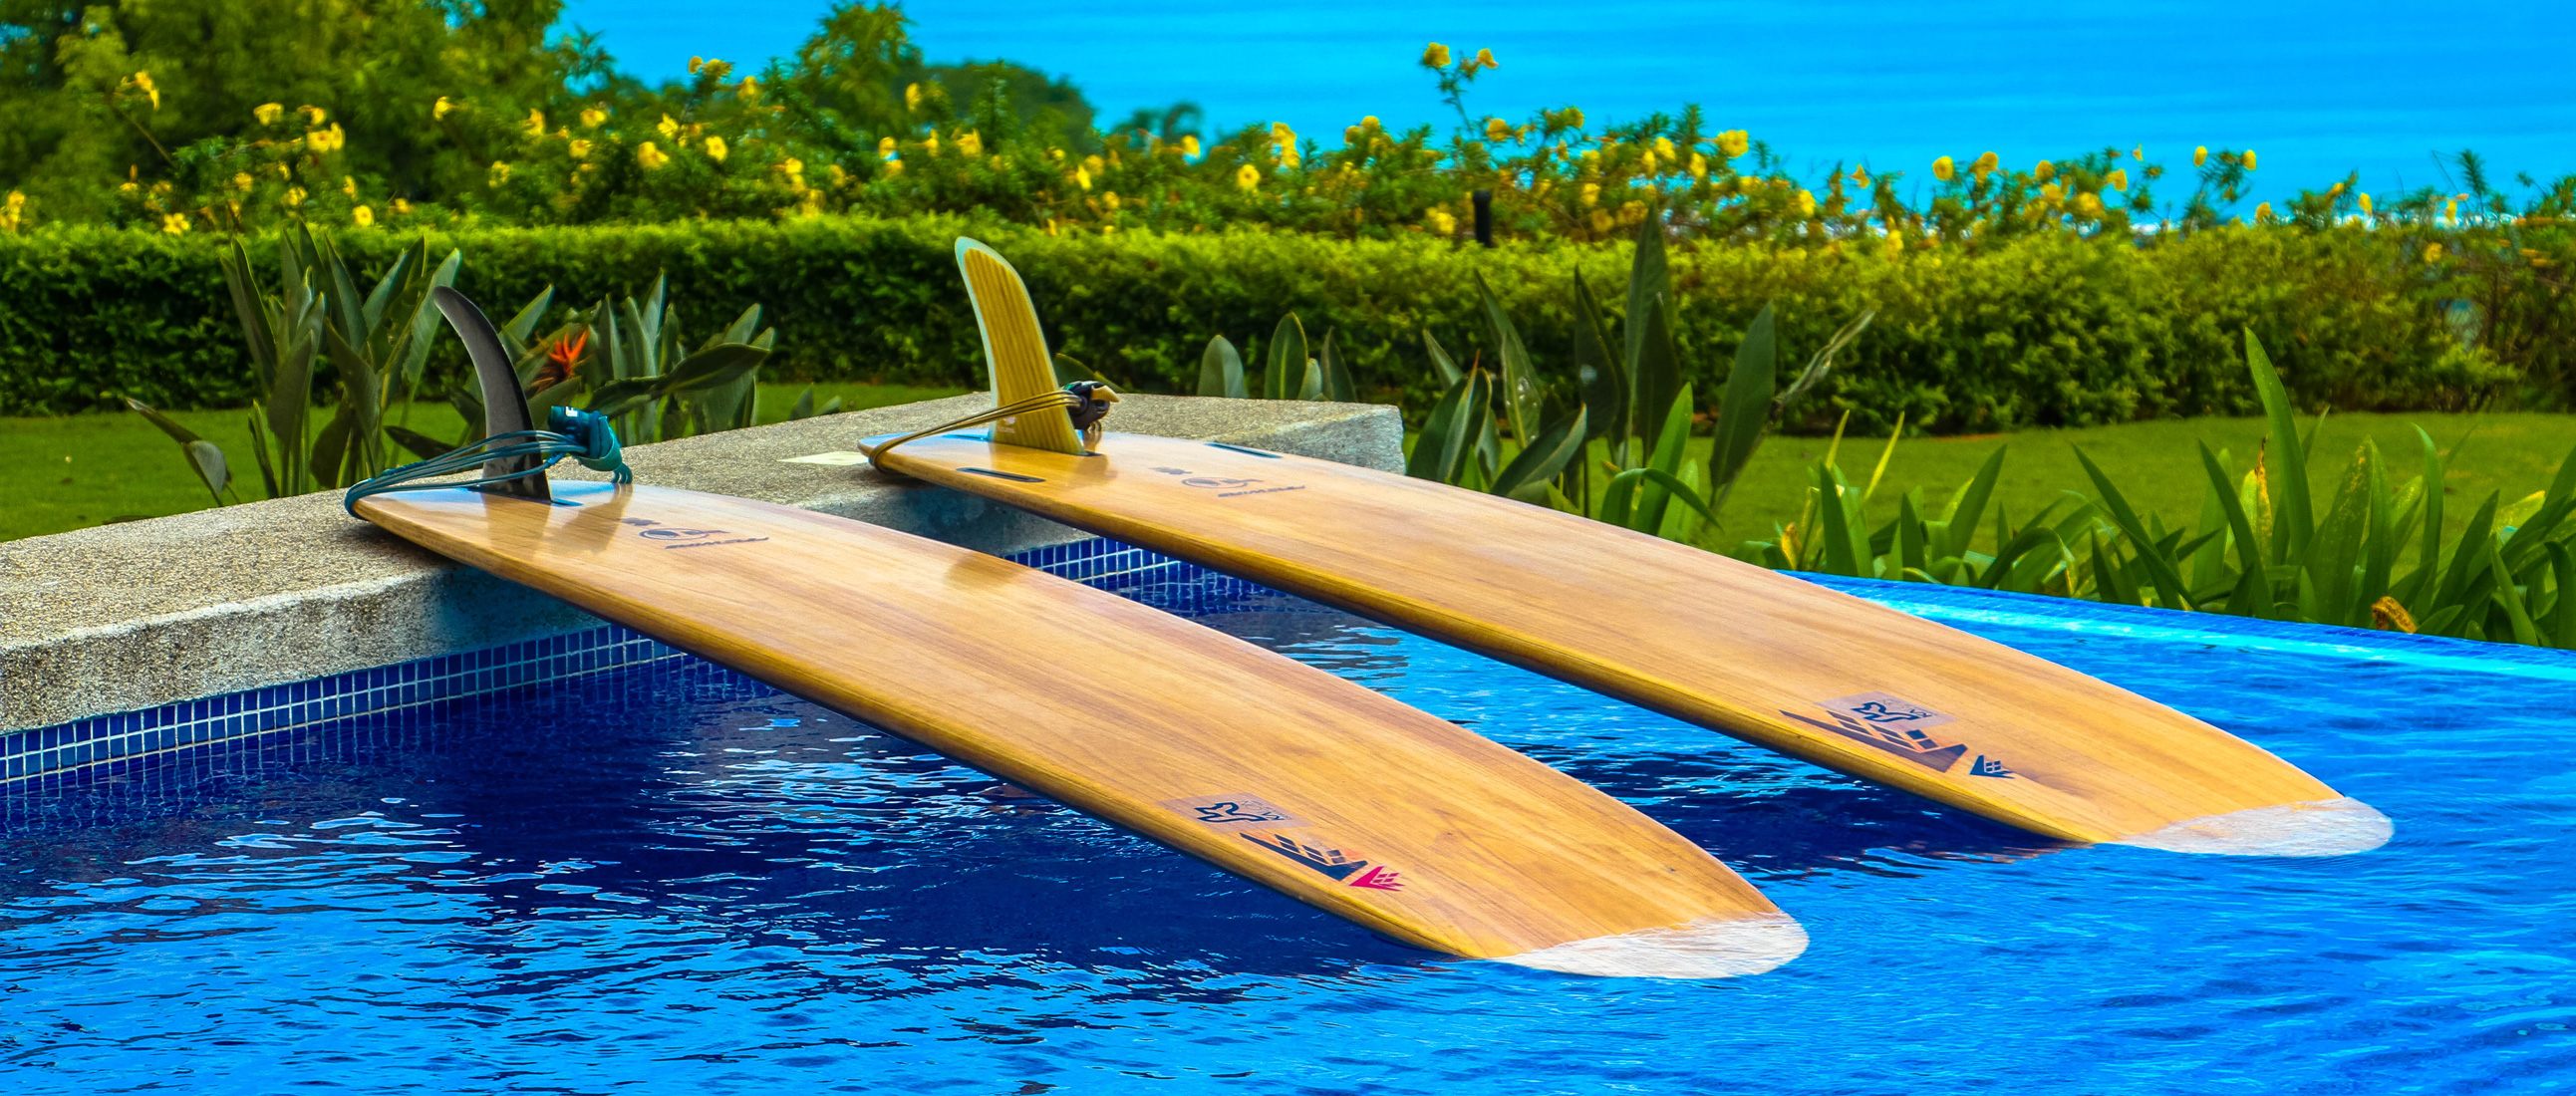 Firewire Surfboards Costa Rica Official Partners Kalon Surf